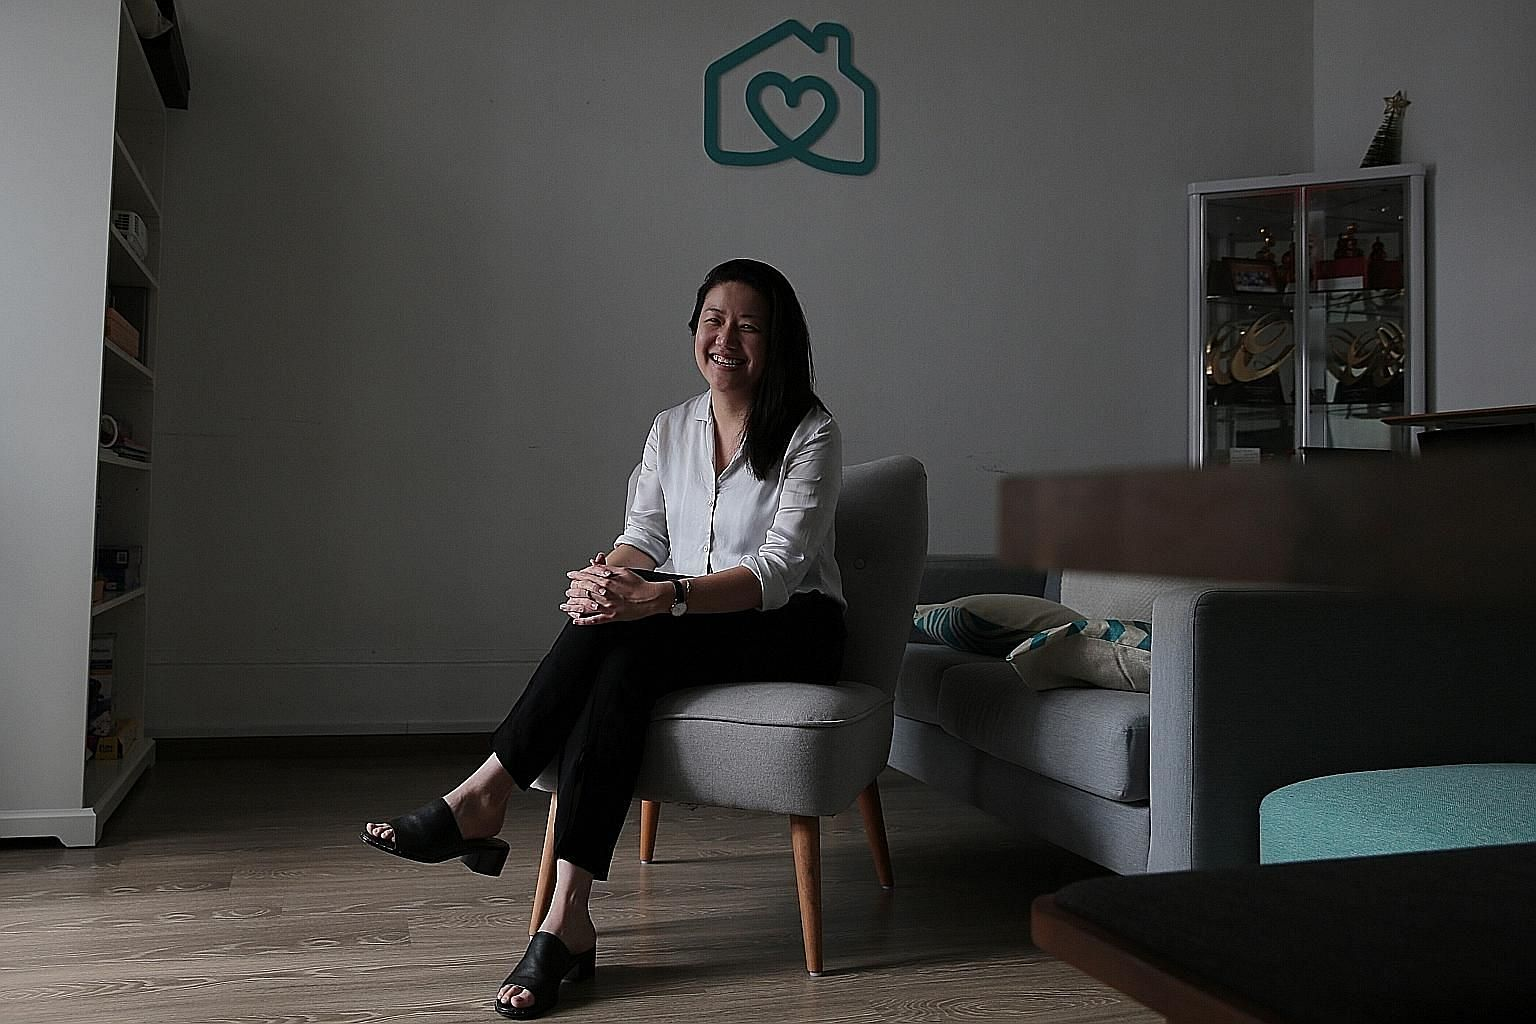 Ms Gillian Tee started Homage with two other co-founders in 2016, after finding it difficult to find help for her mother. Last month, she won Women's Weekly magazine's Great Women of Our Time Award, which honours Singapore's most inspiring women.